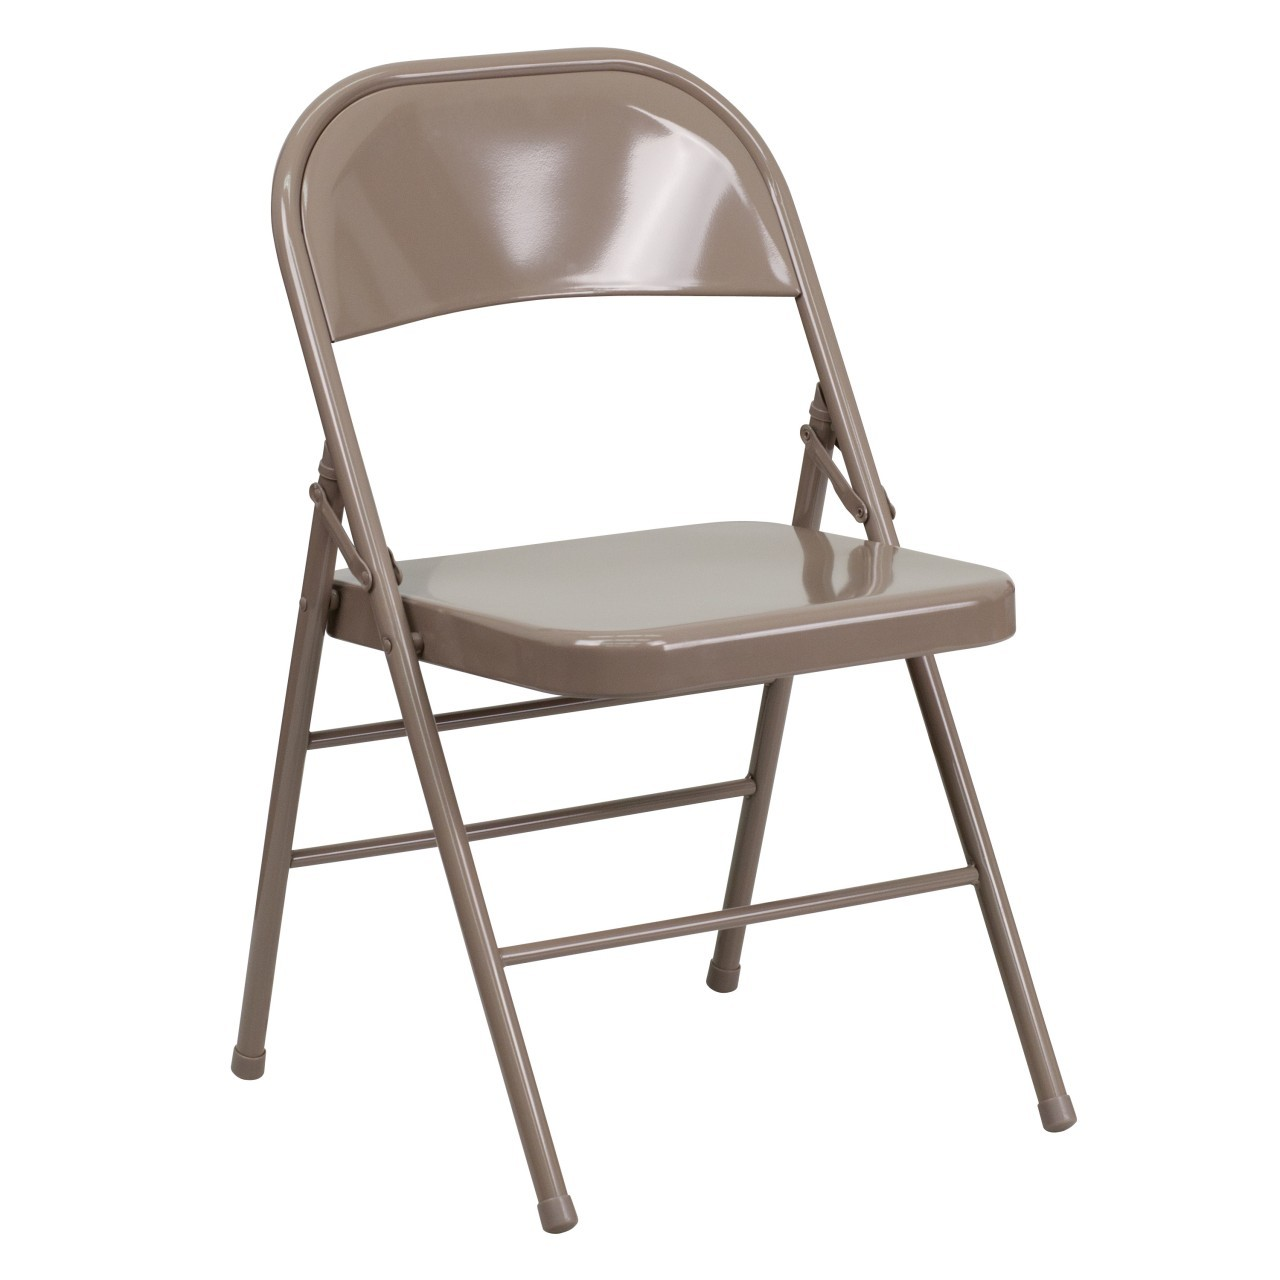 The Gospel and Folding Metal Chairs  reachkeepconferencecom